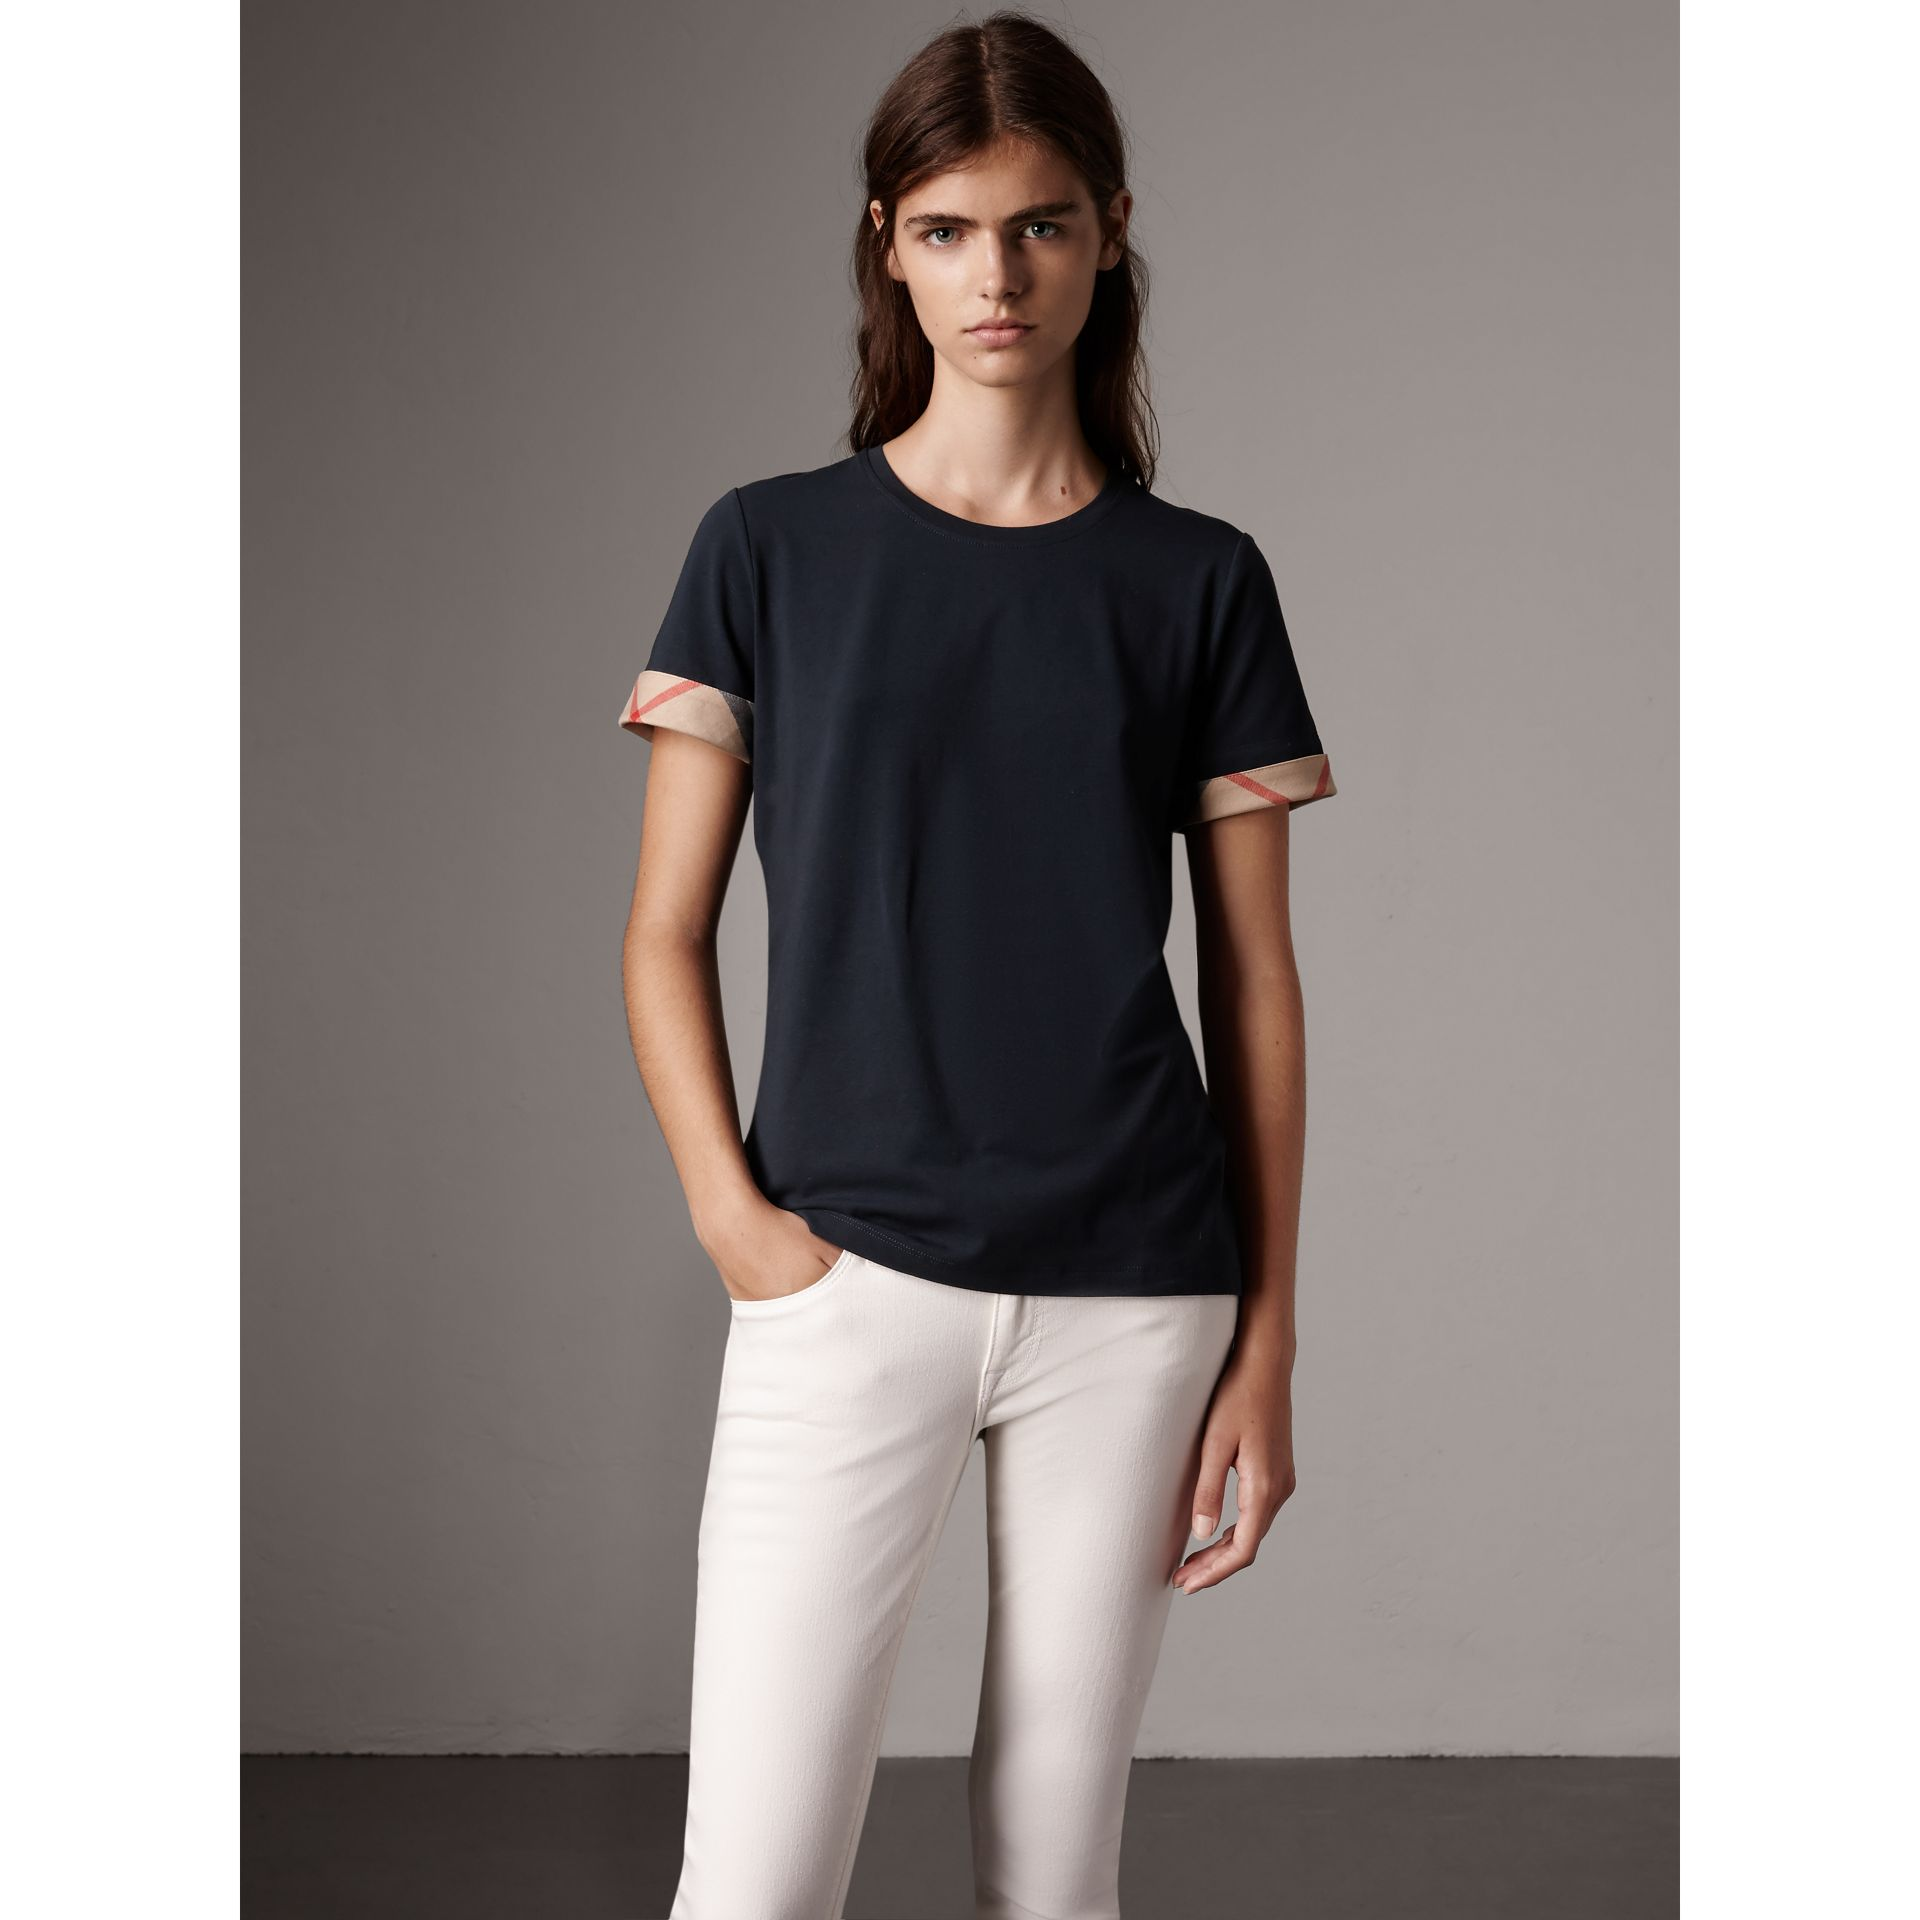 Check Cuff Stretch Cotton T-Shirt in Navy - Women | Burberry - gallery image 1